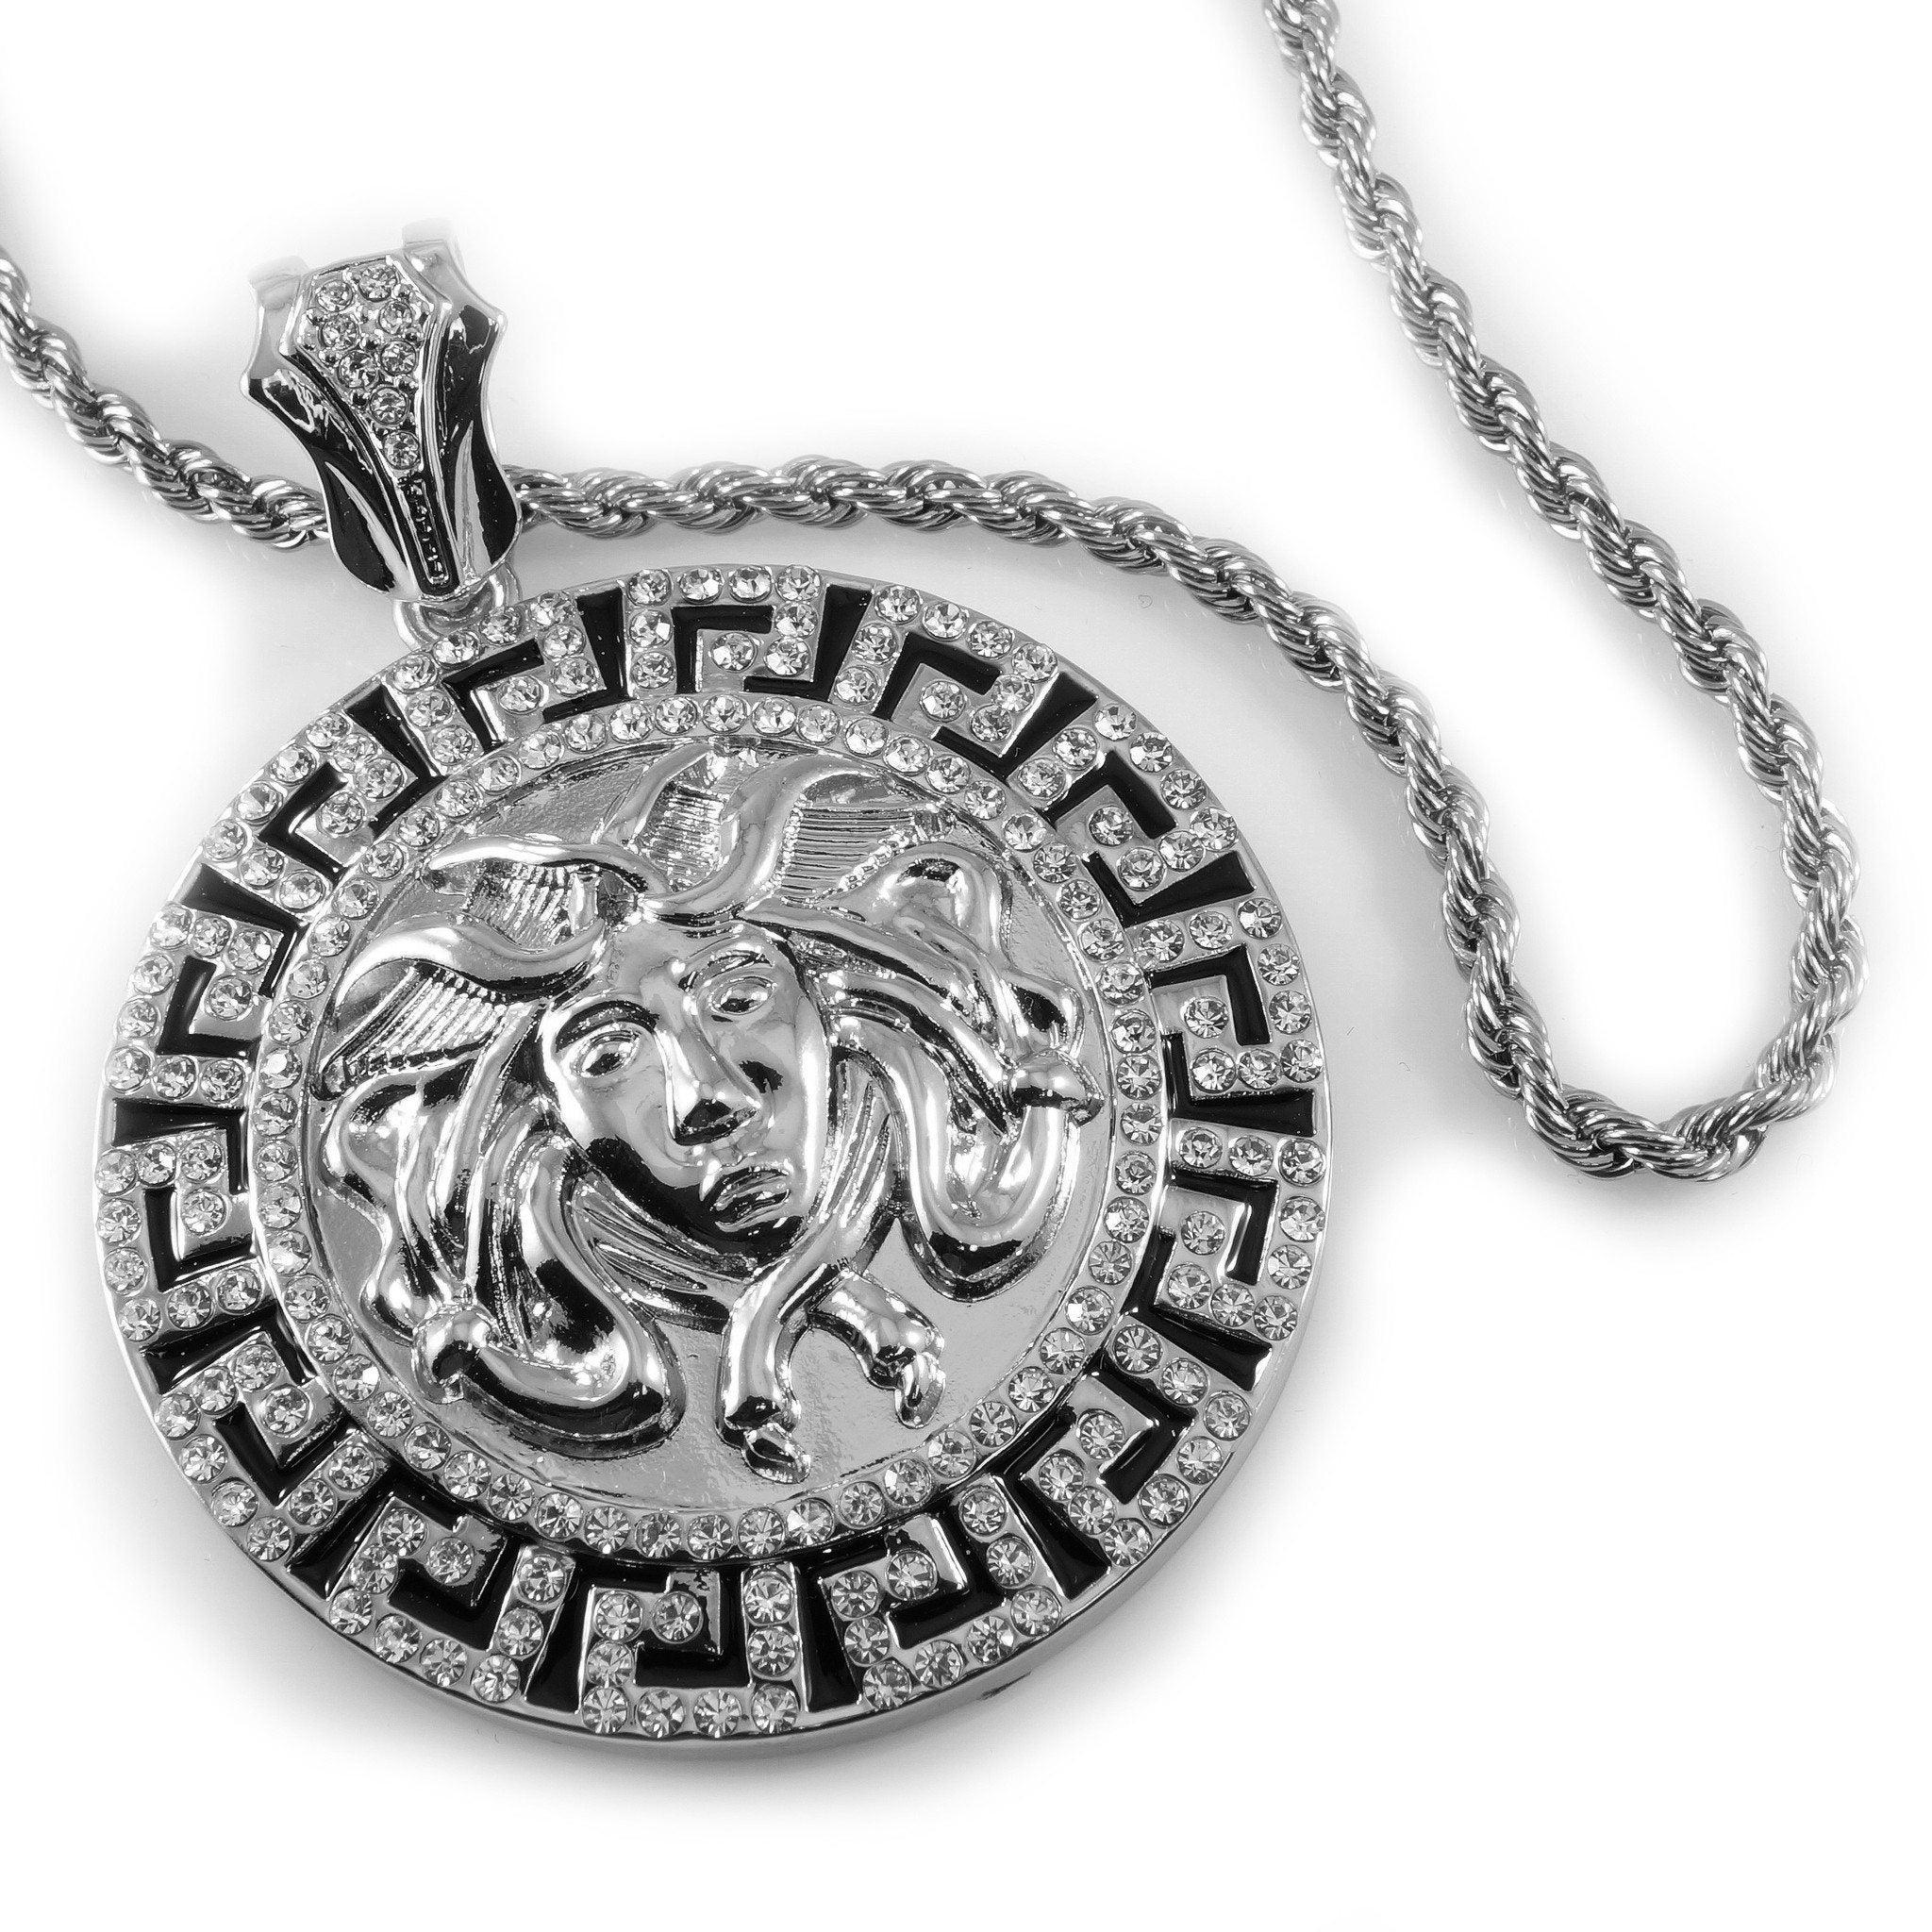 Pendants 14k White Gold Iced Out Medusa Pendant With Hip Hop Chain - White Background